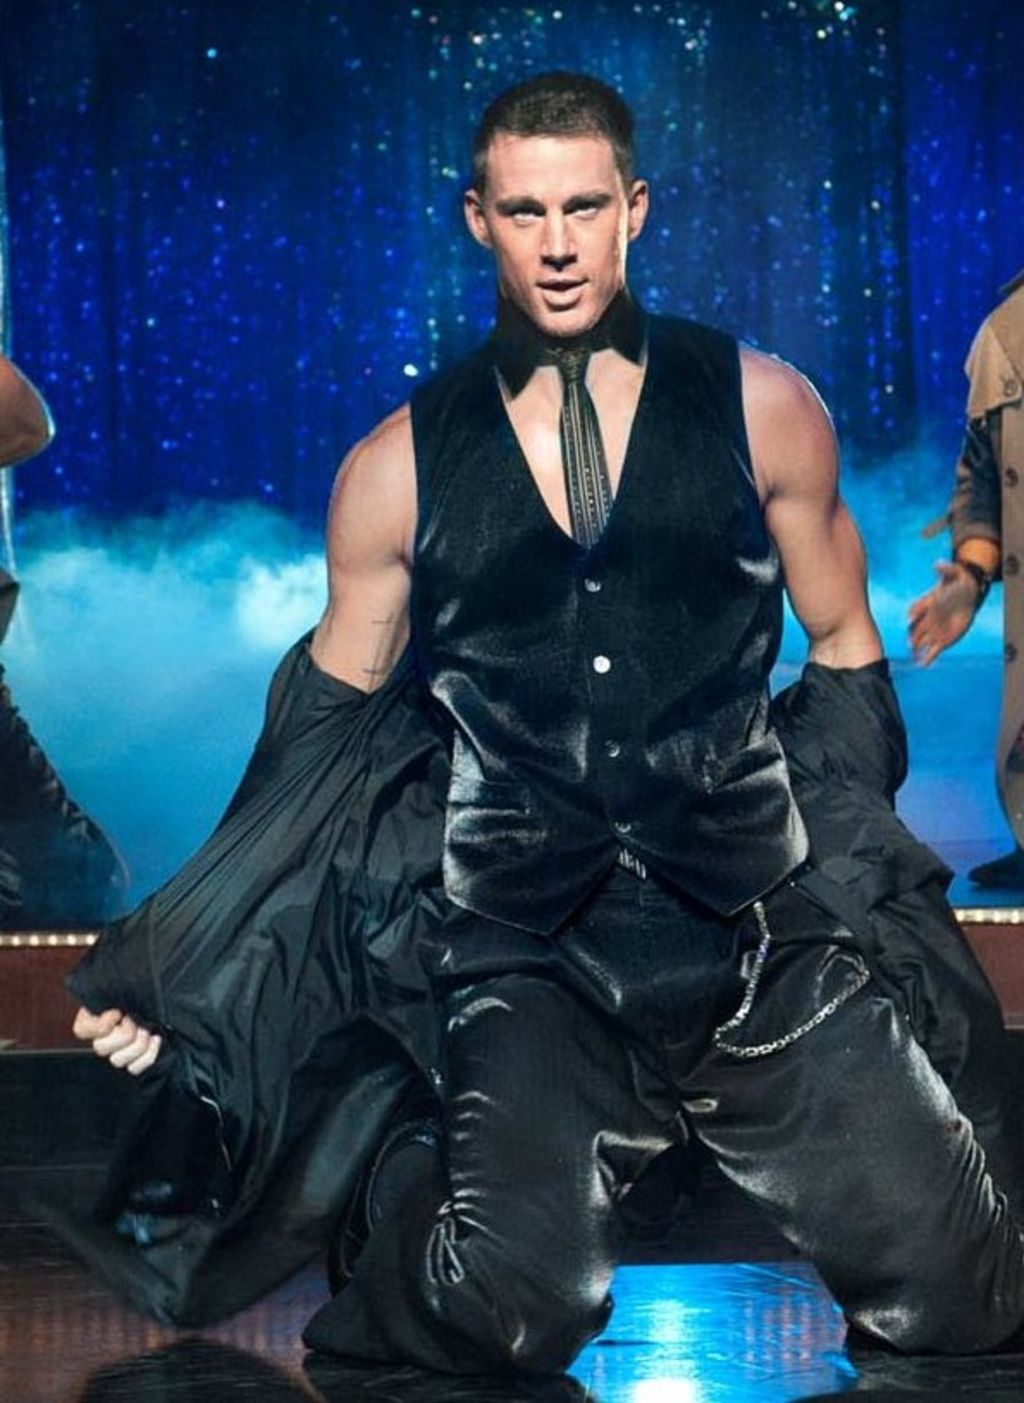 Channing Tatum in the original Magic Mike movie, released by Warner Bros. Pictures.